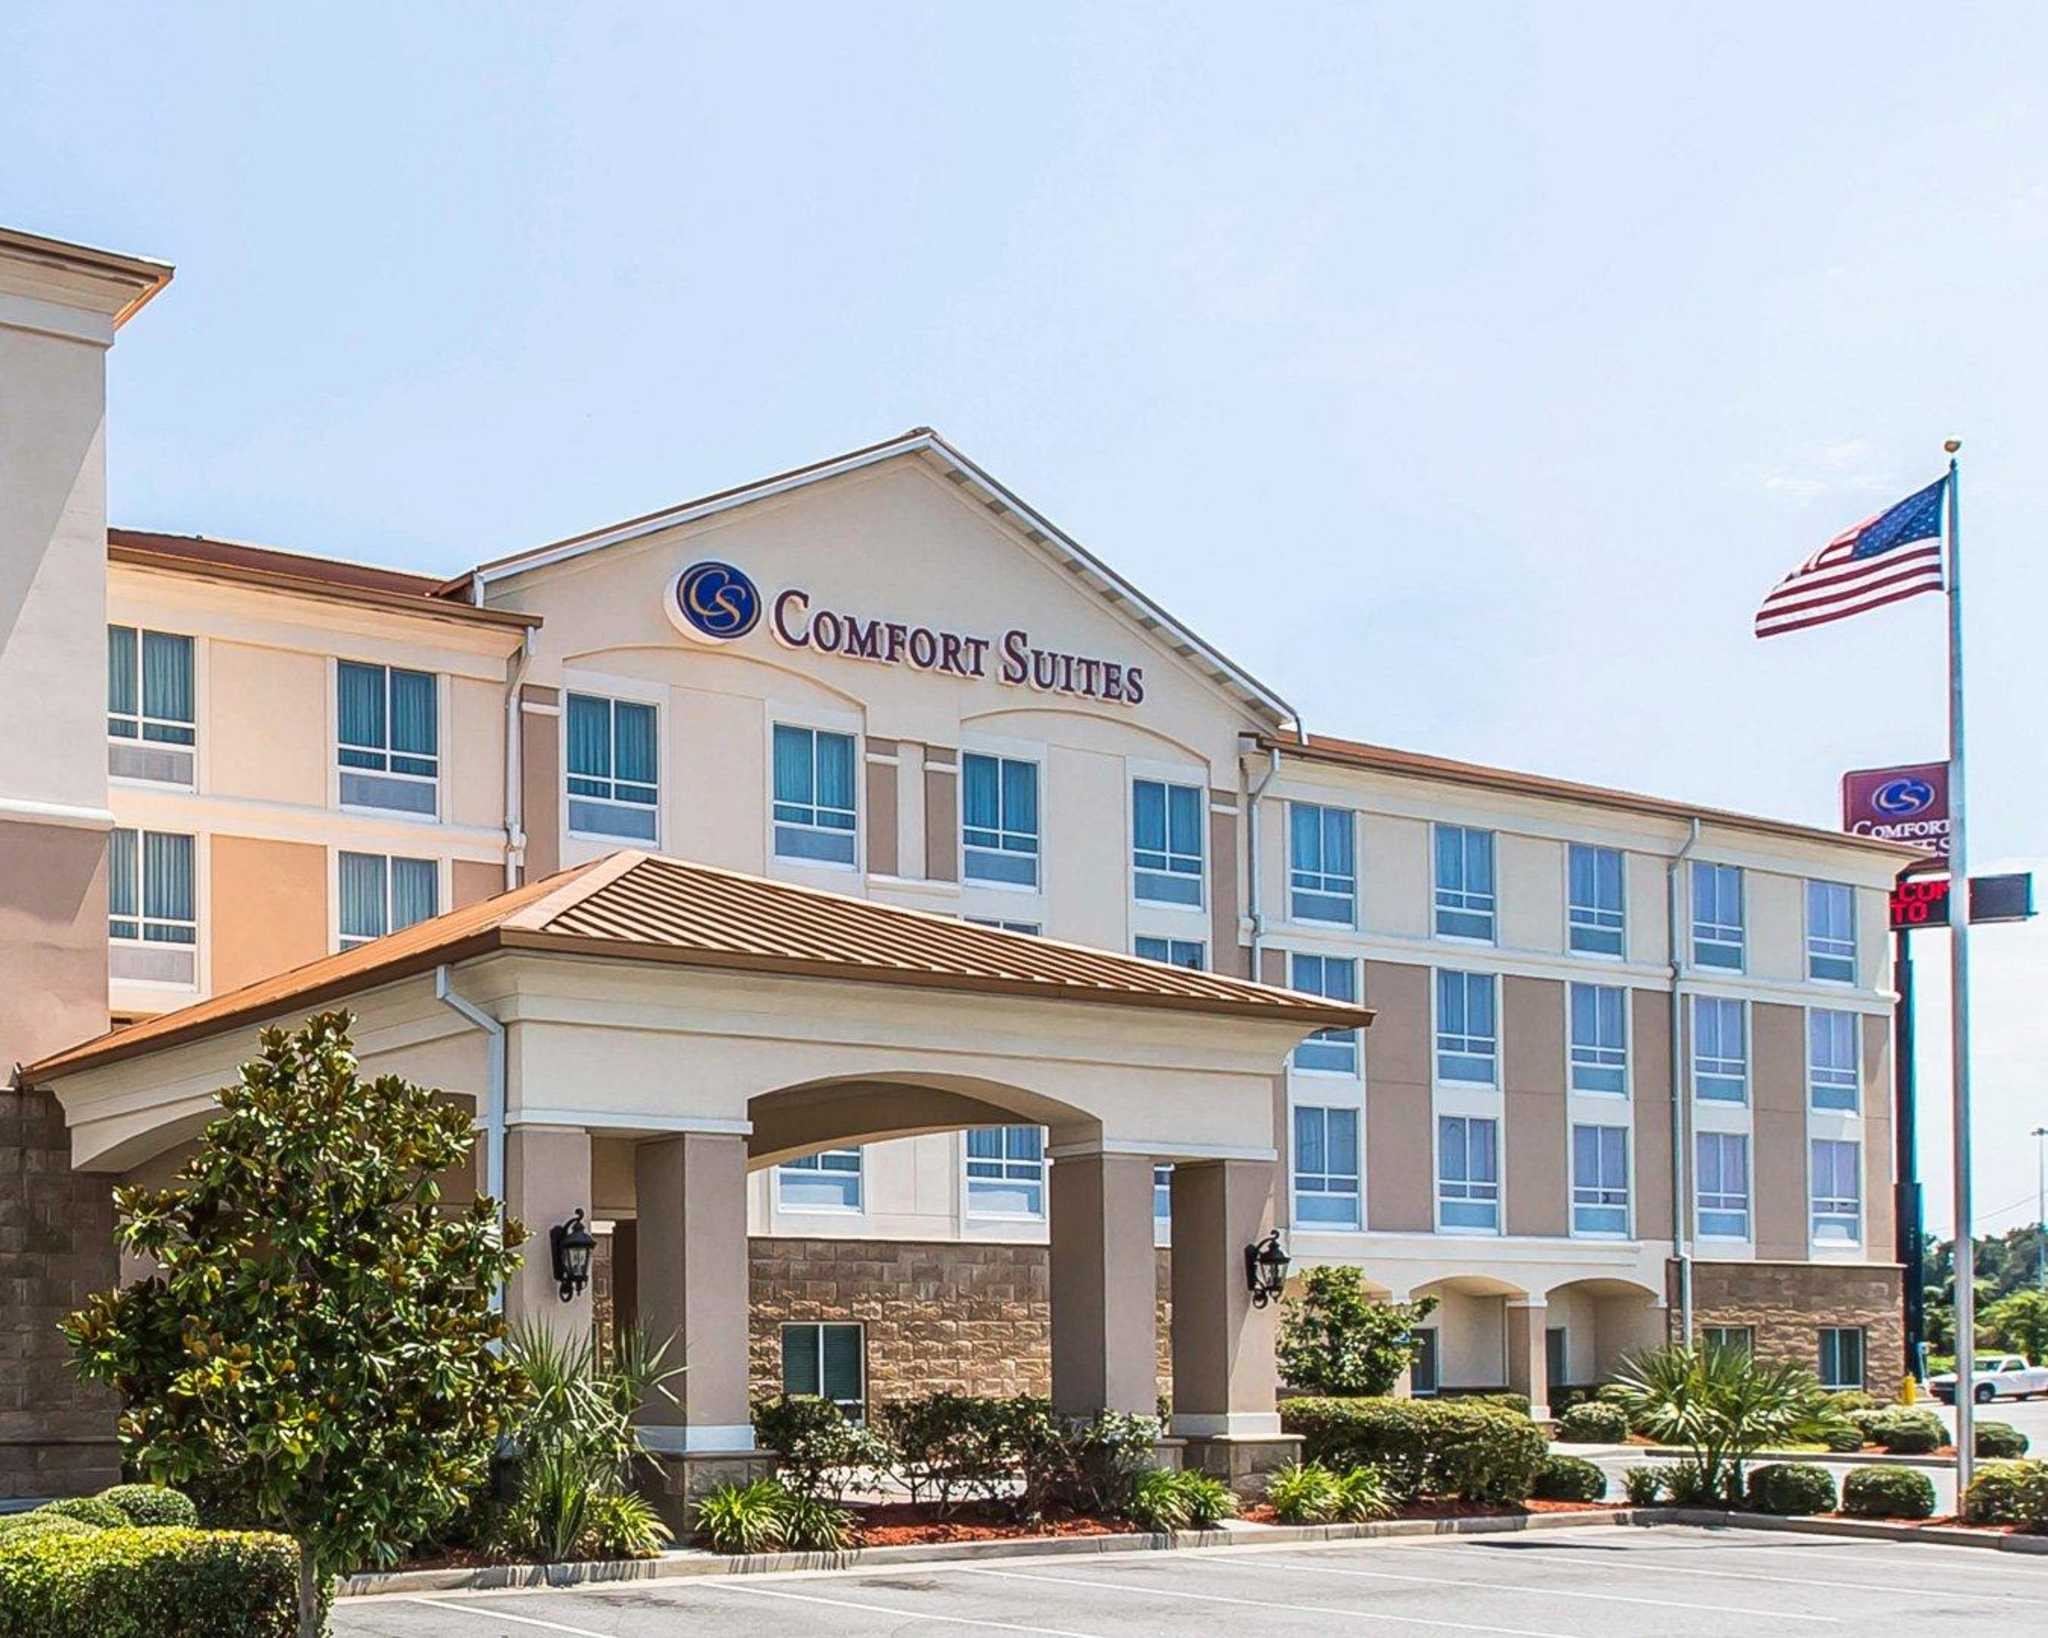 Comfort Suites Coupons Near Me In Valdosta 8coupons